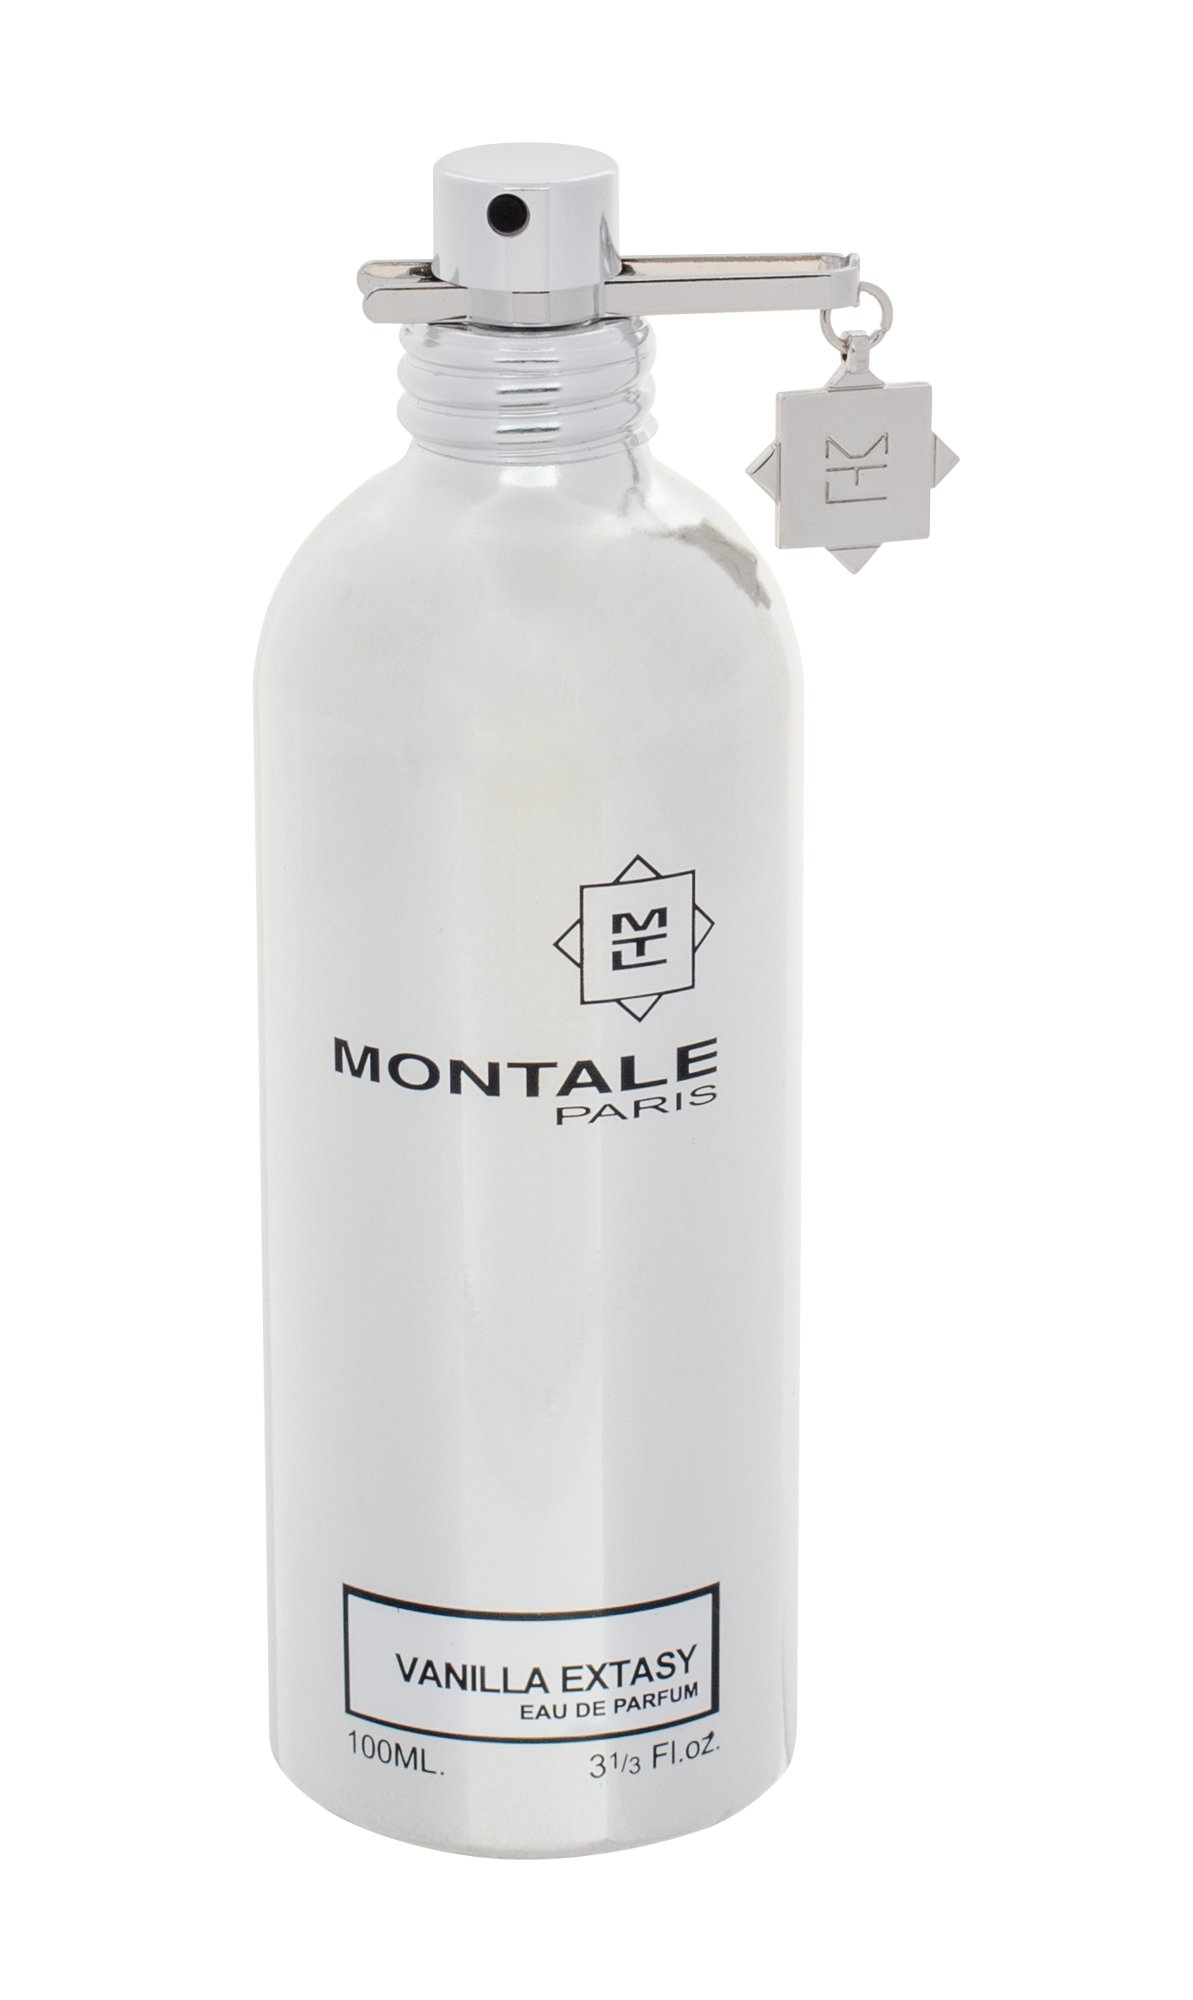 Montale Paris Vanilla Extasy, edp 100ml